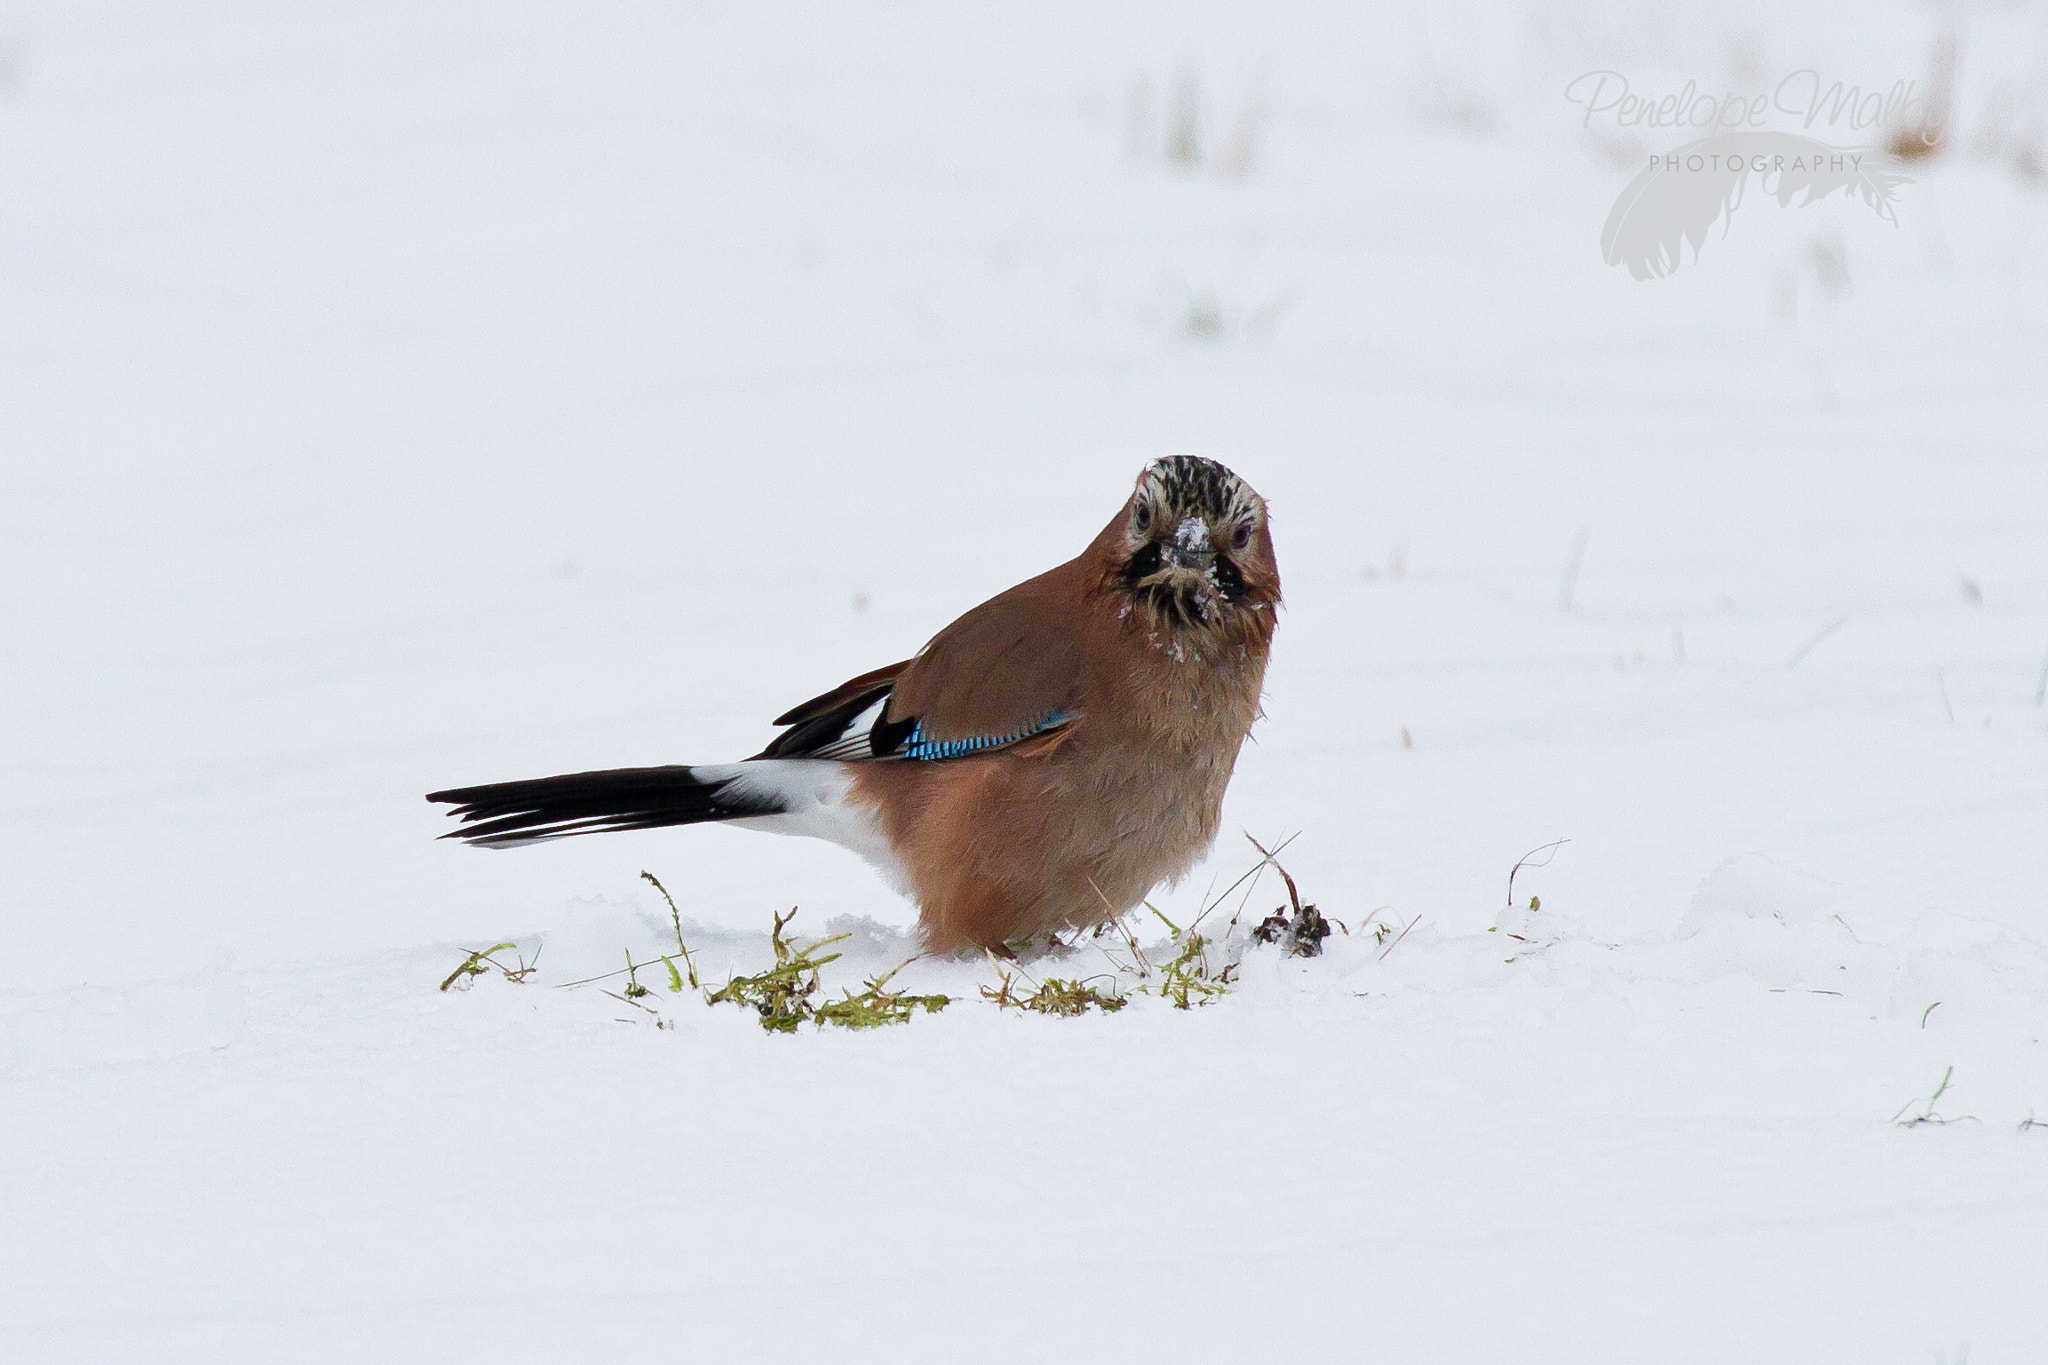 Photograph Just a Jay by Penelope Malby on 500px